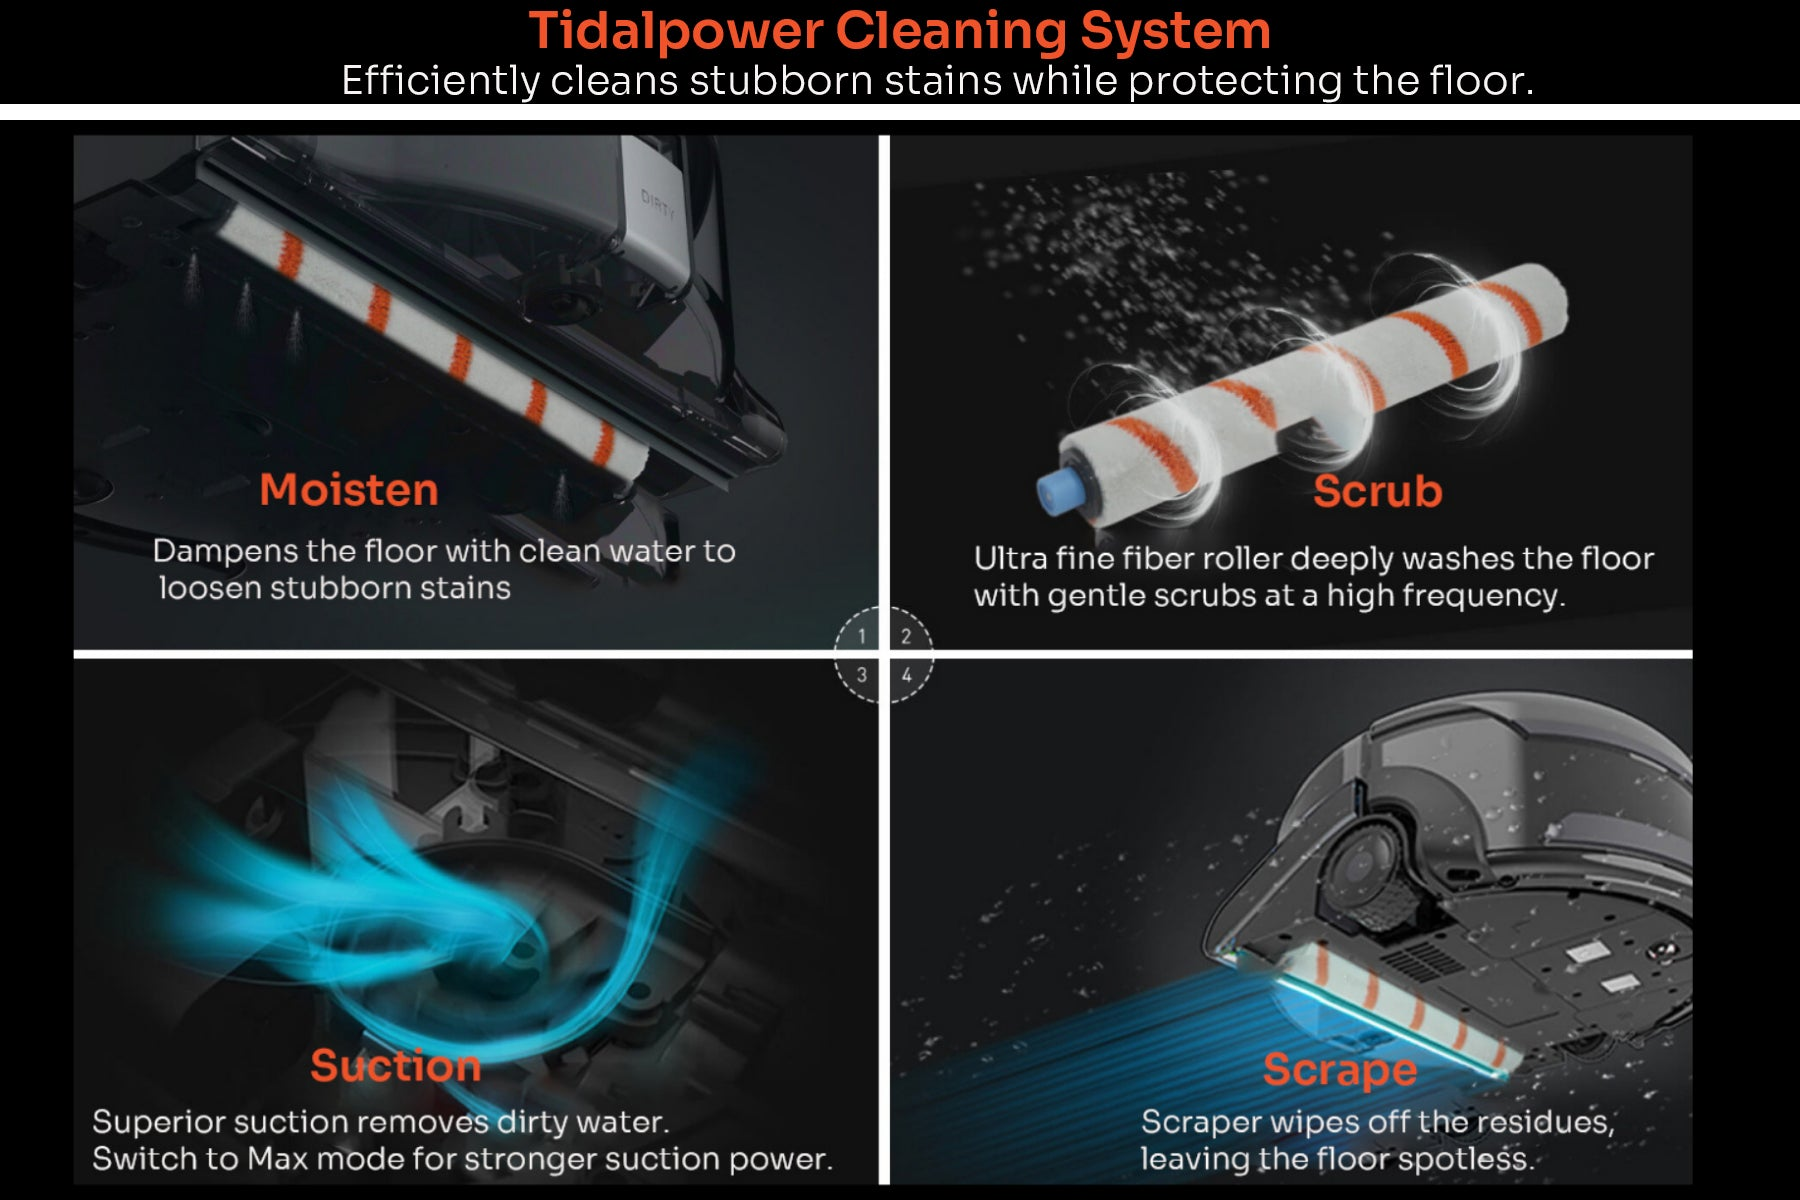 Tidalpower Cleaning System